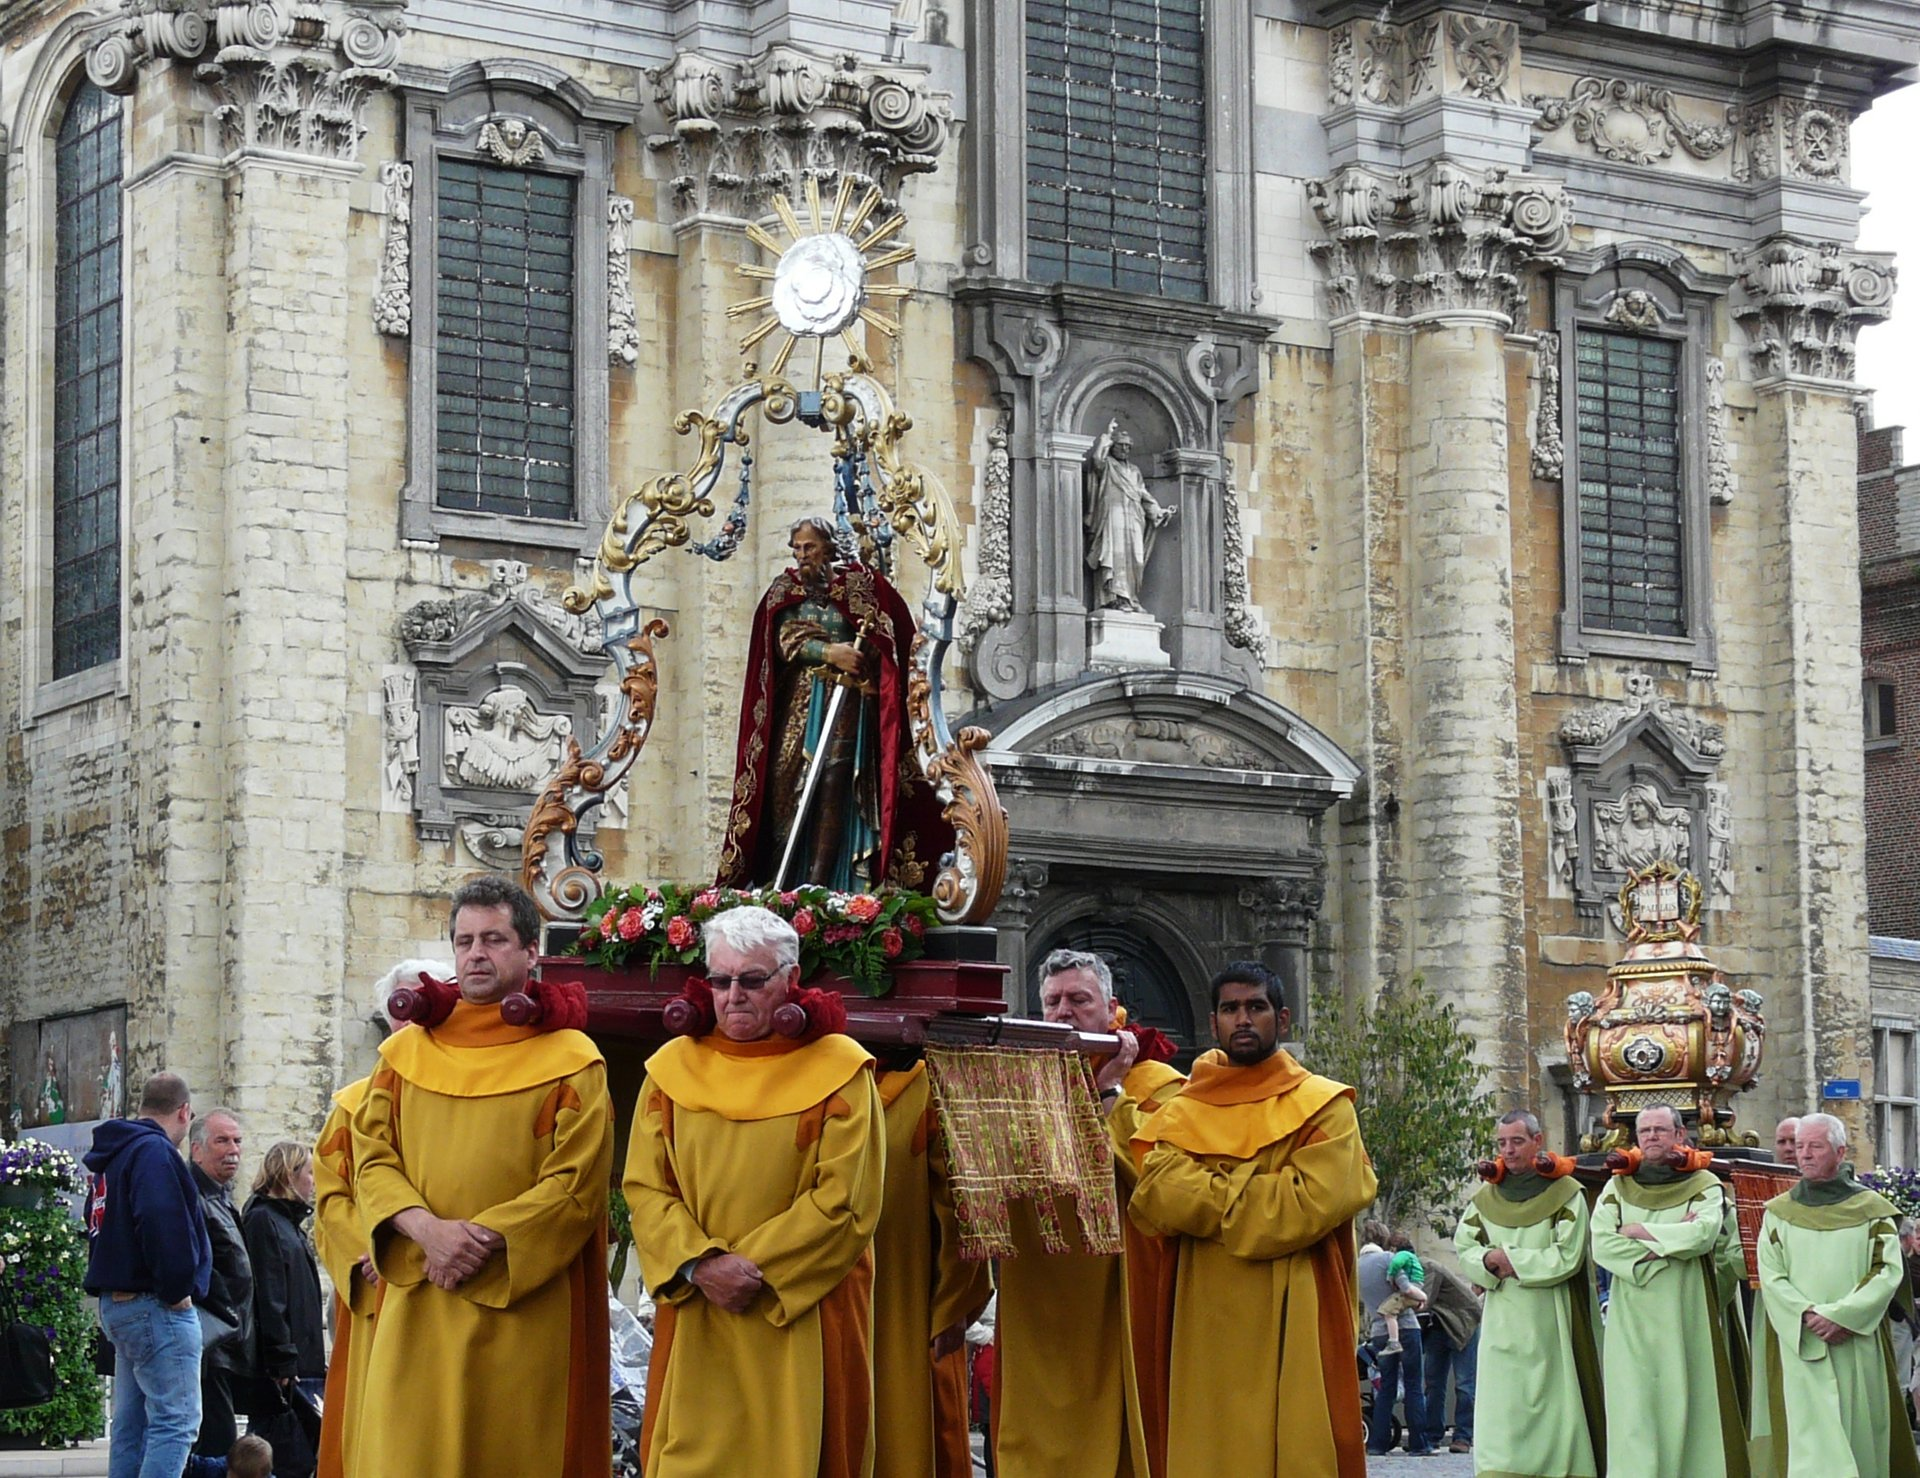 Hanswijk Procession in Belgium 2020 - Best Time